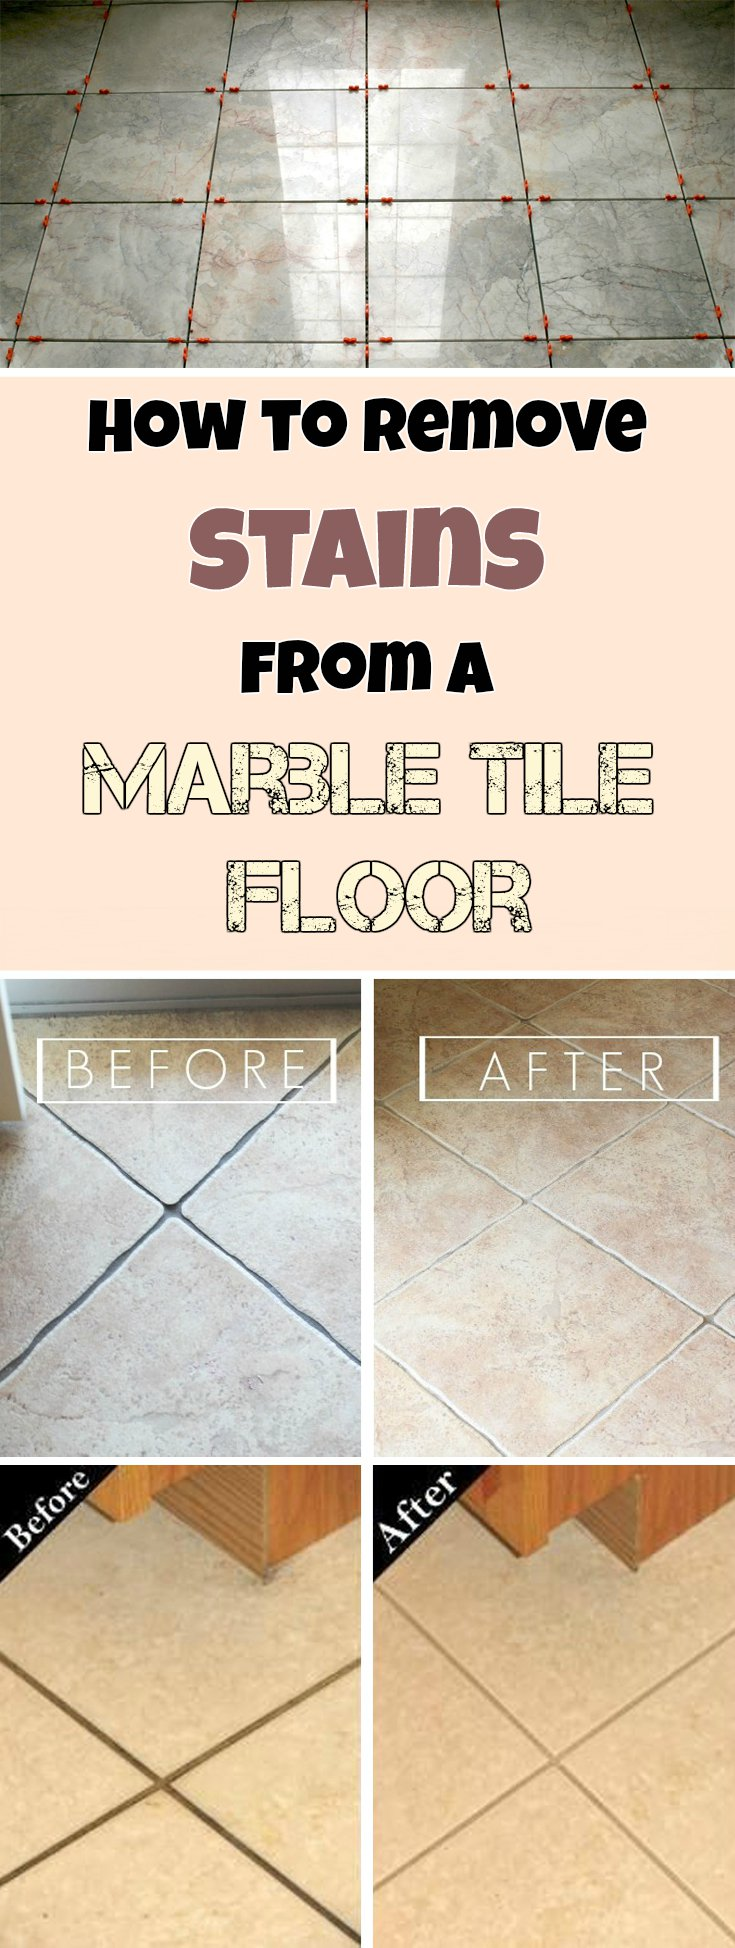 How to remove stains from marble floor tiles images home how to remove stains from marble tile floor mycleaningsolutions marialoaizafo images dailygadgetfo Gallery